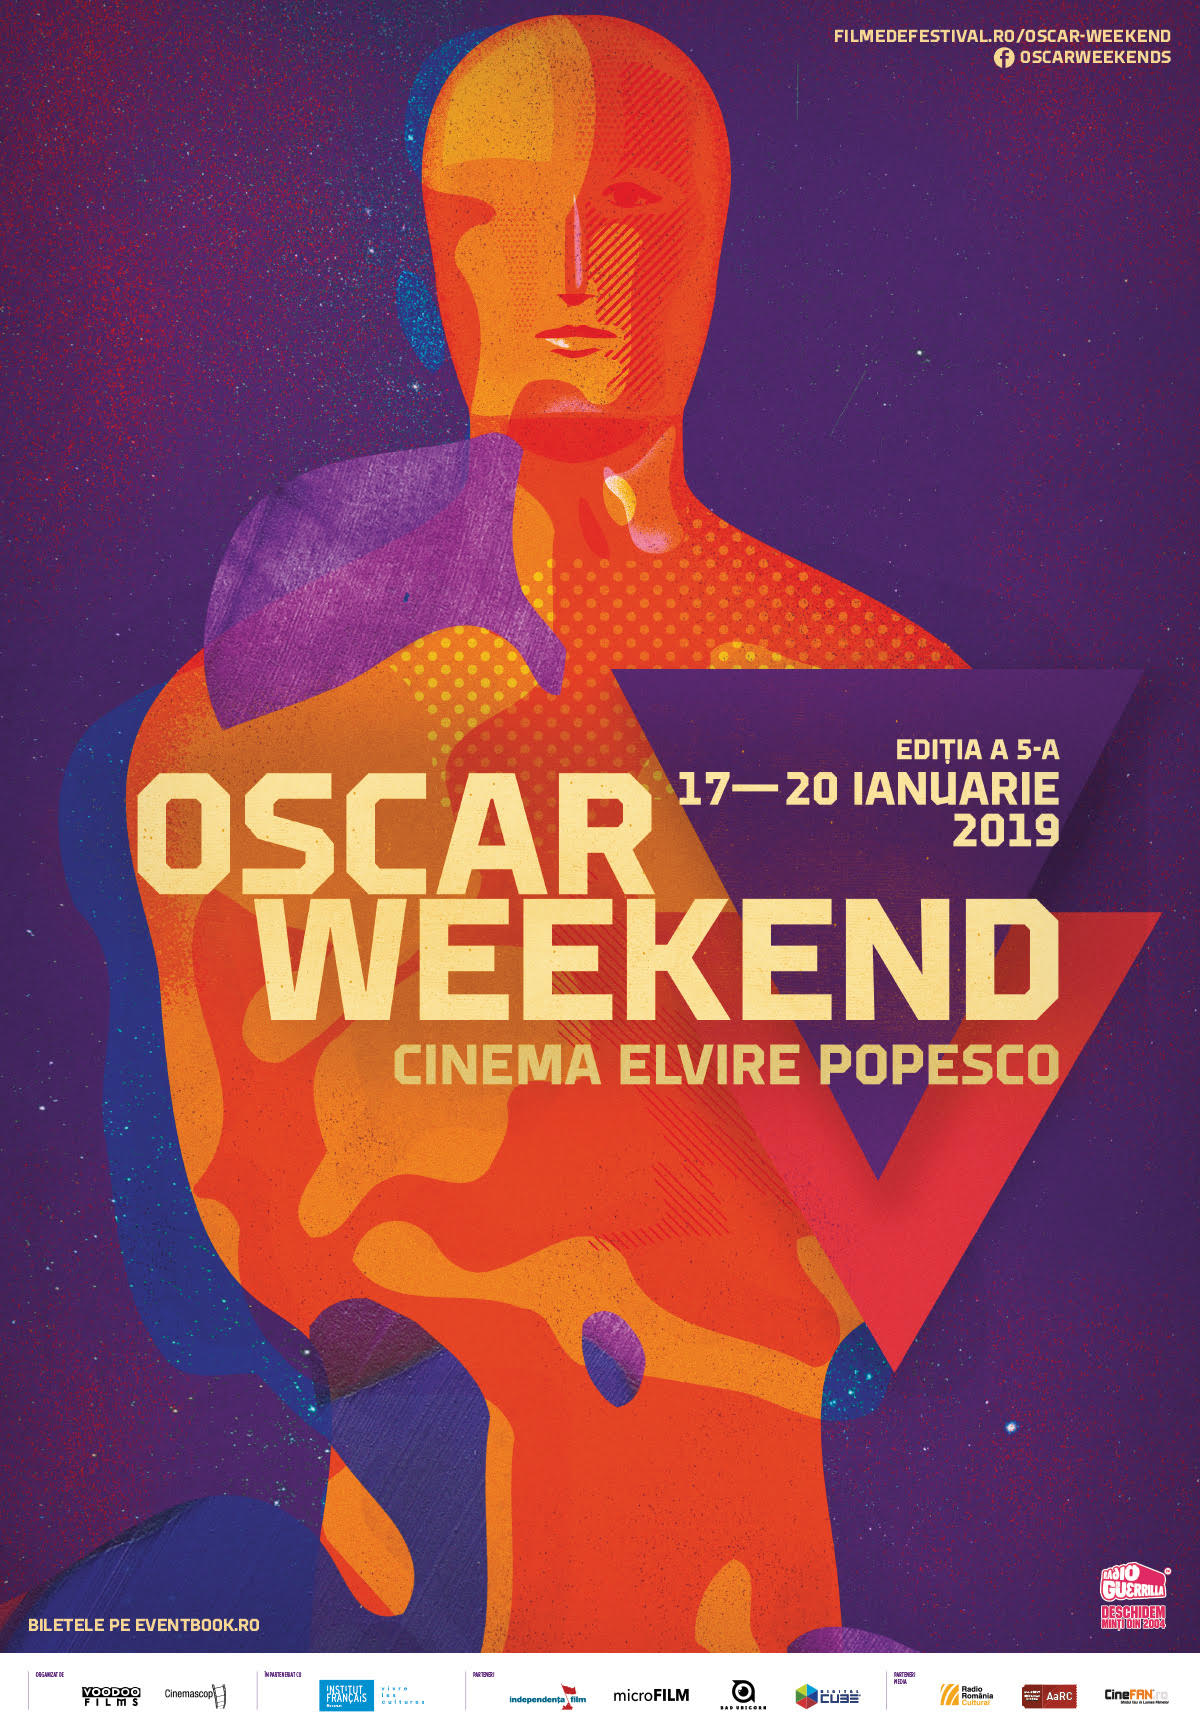 {focus_keyword} A început Oscar Weekend la Cinema Elvire Popesco Afis Oscar Weekend 2019